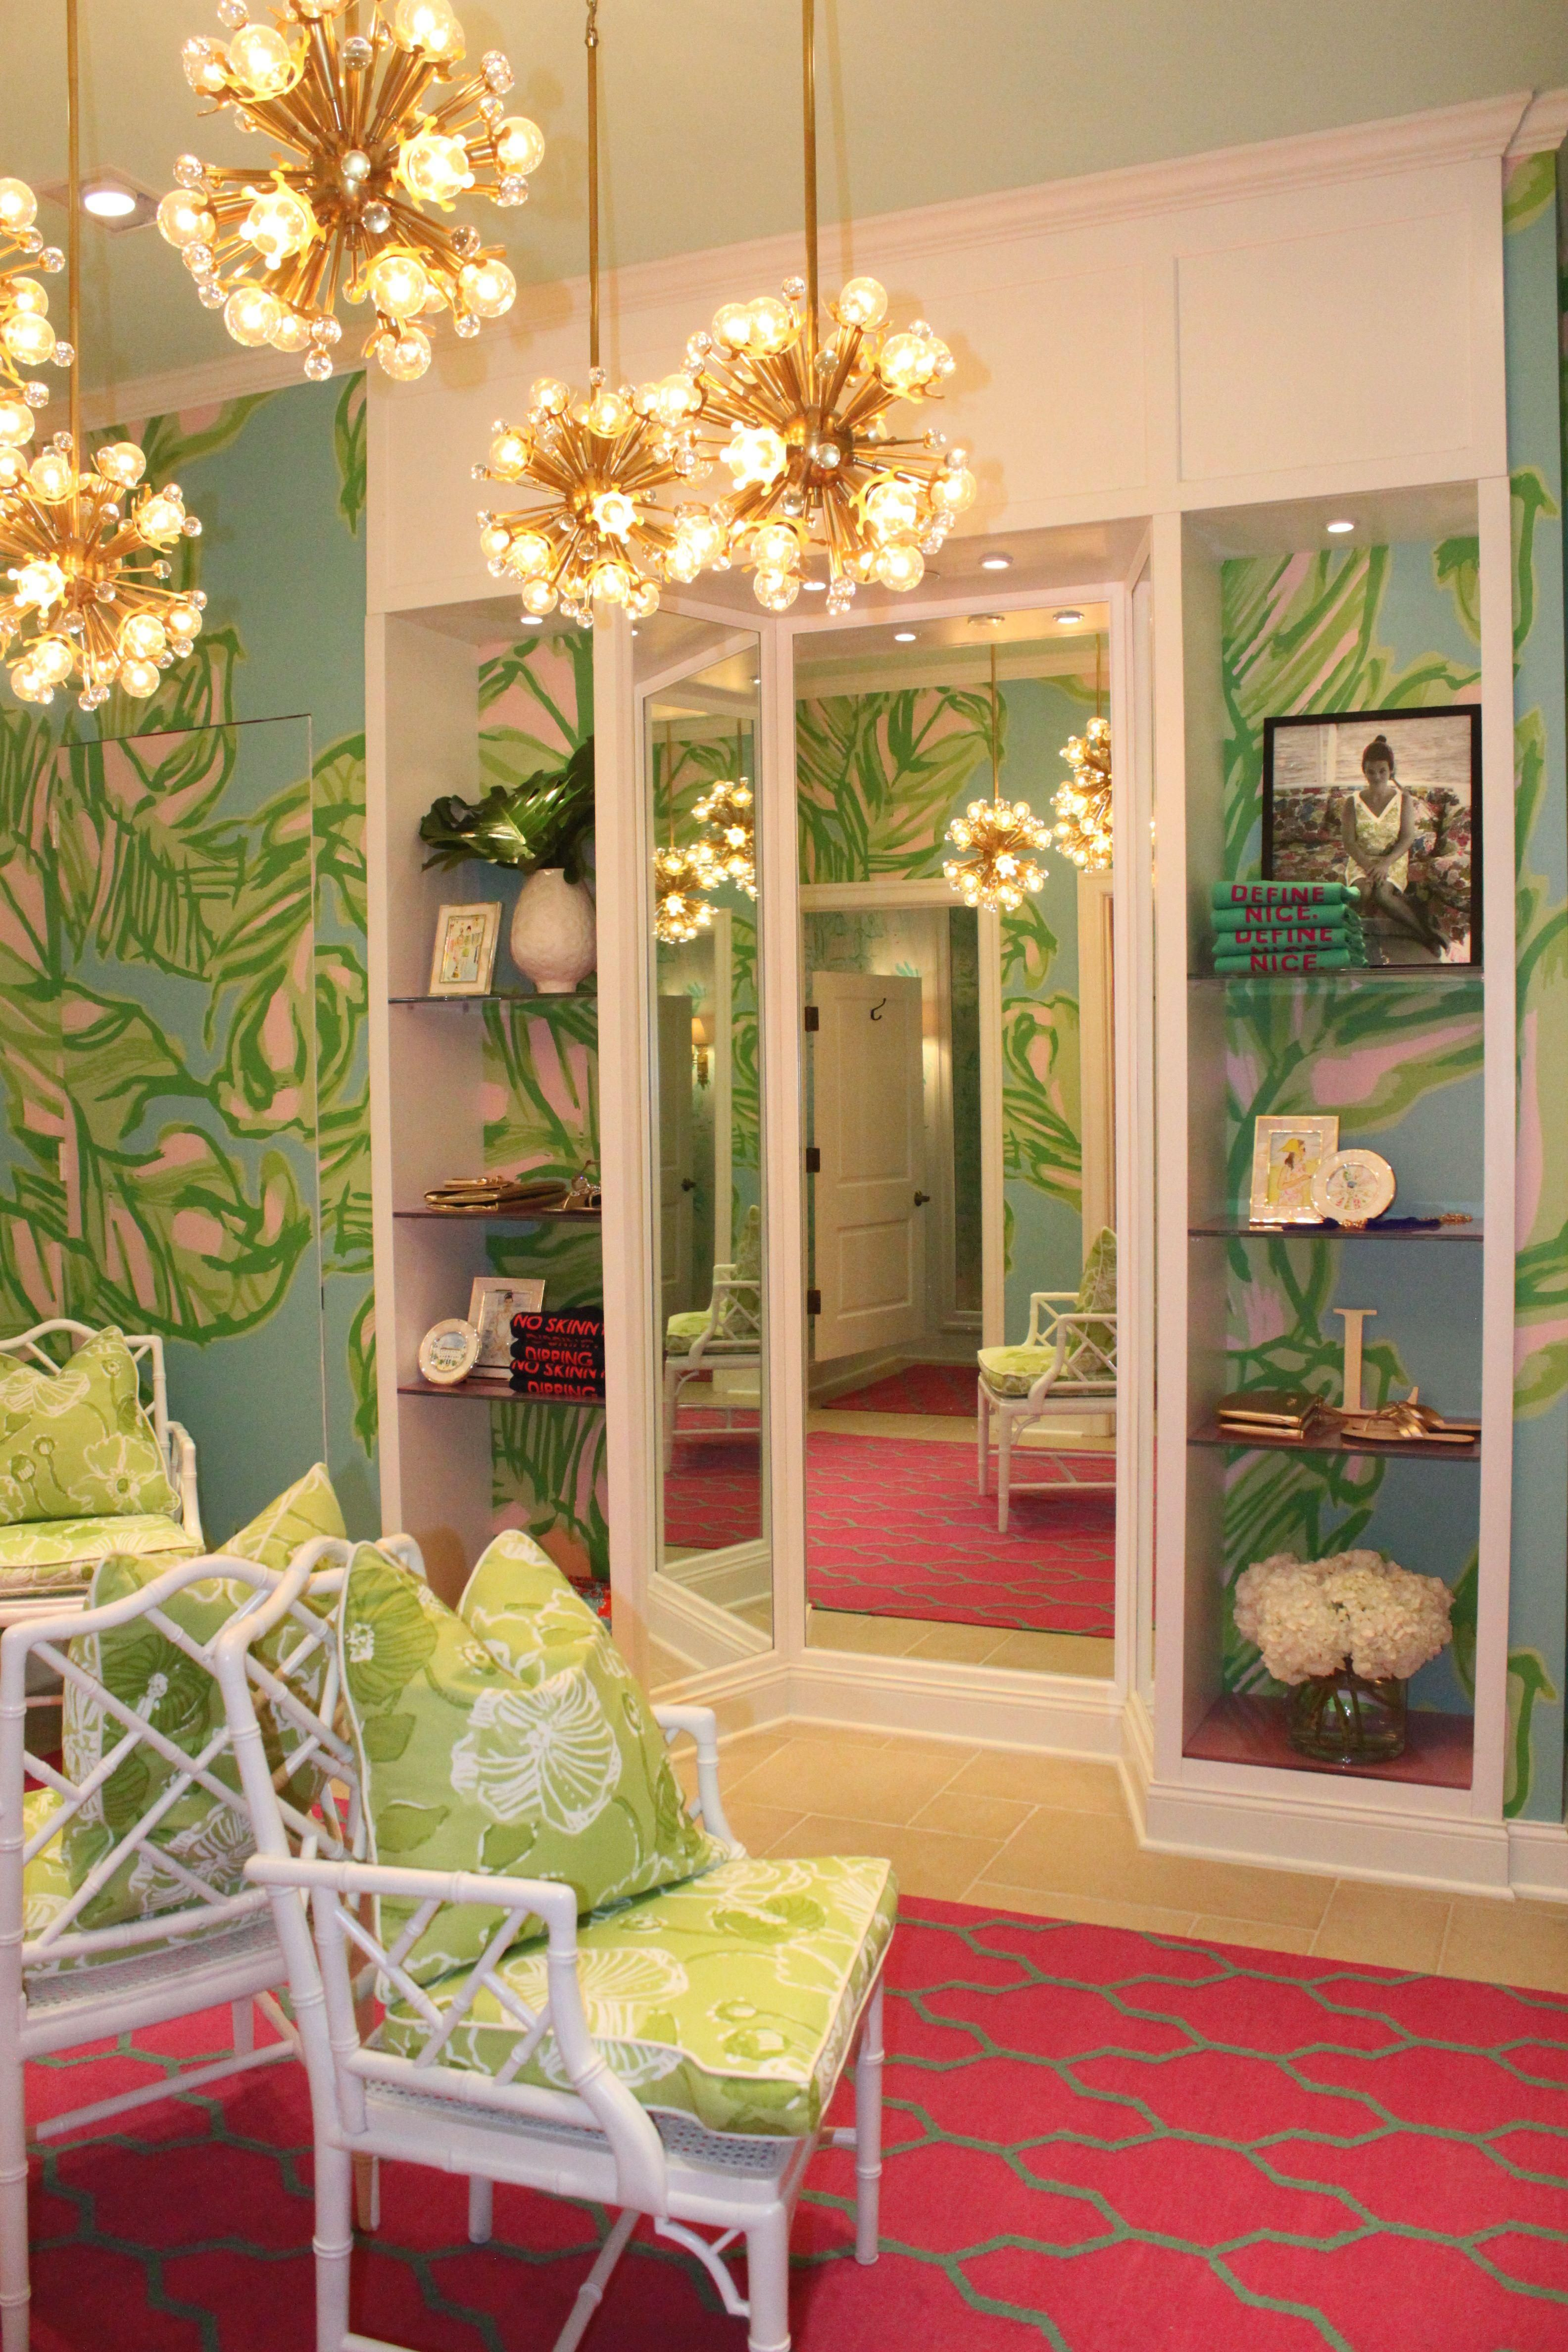 Dressing room area at lilly pulitzer waterside in naples for Craft stores naples fl